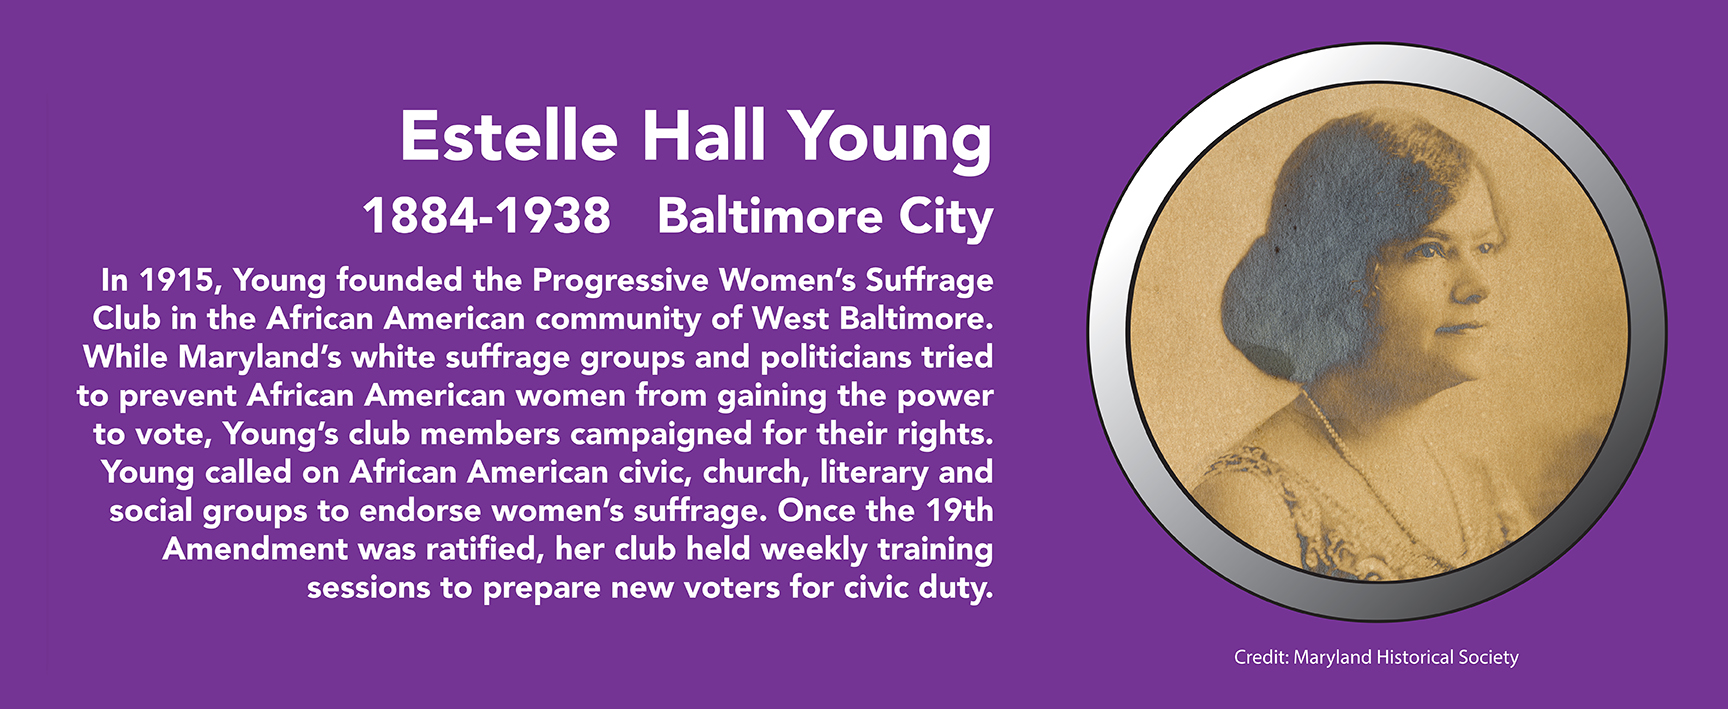 Estelle Hall Young